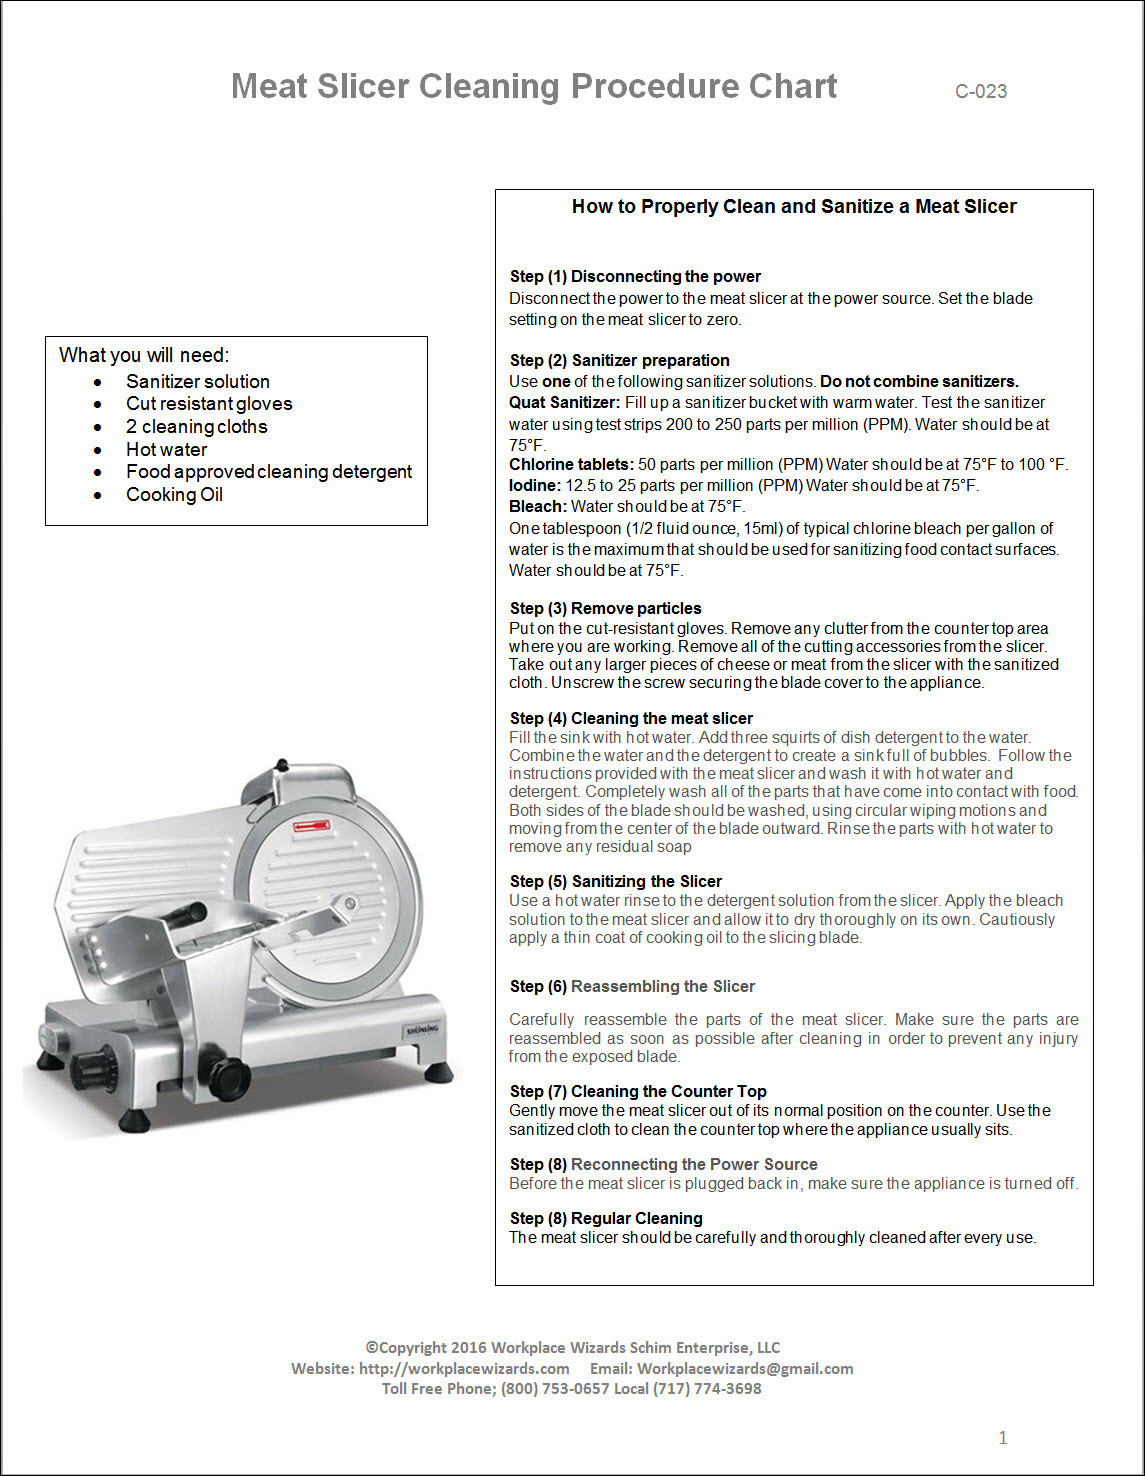 Meat Slicer Cleaning Procedure Chart